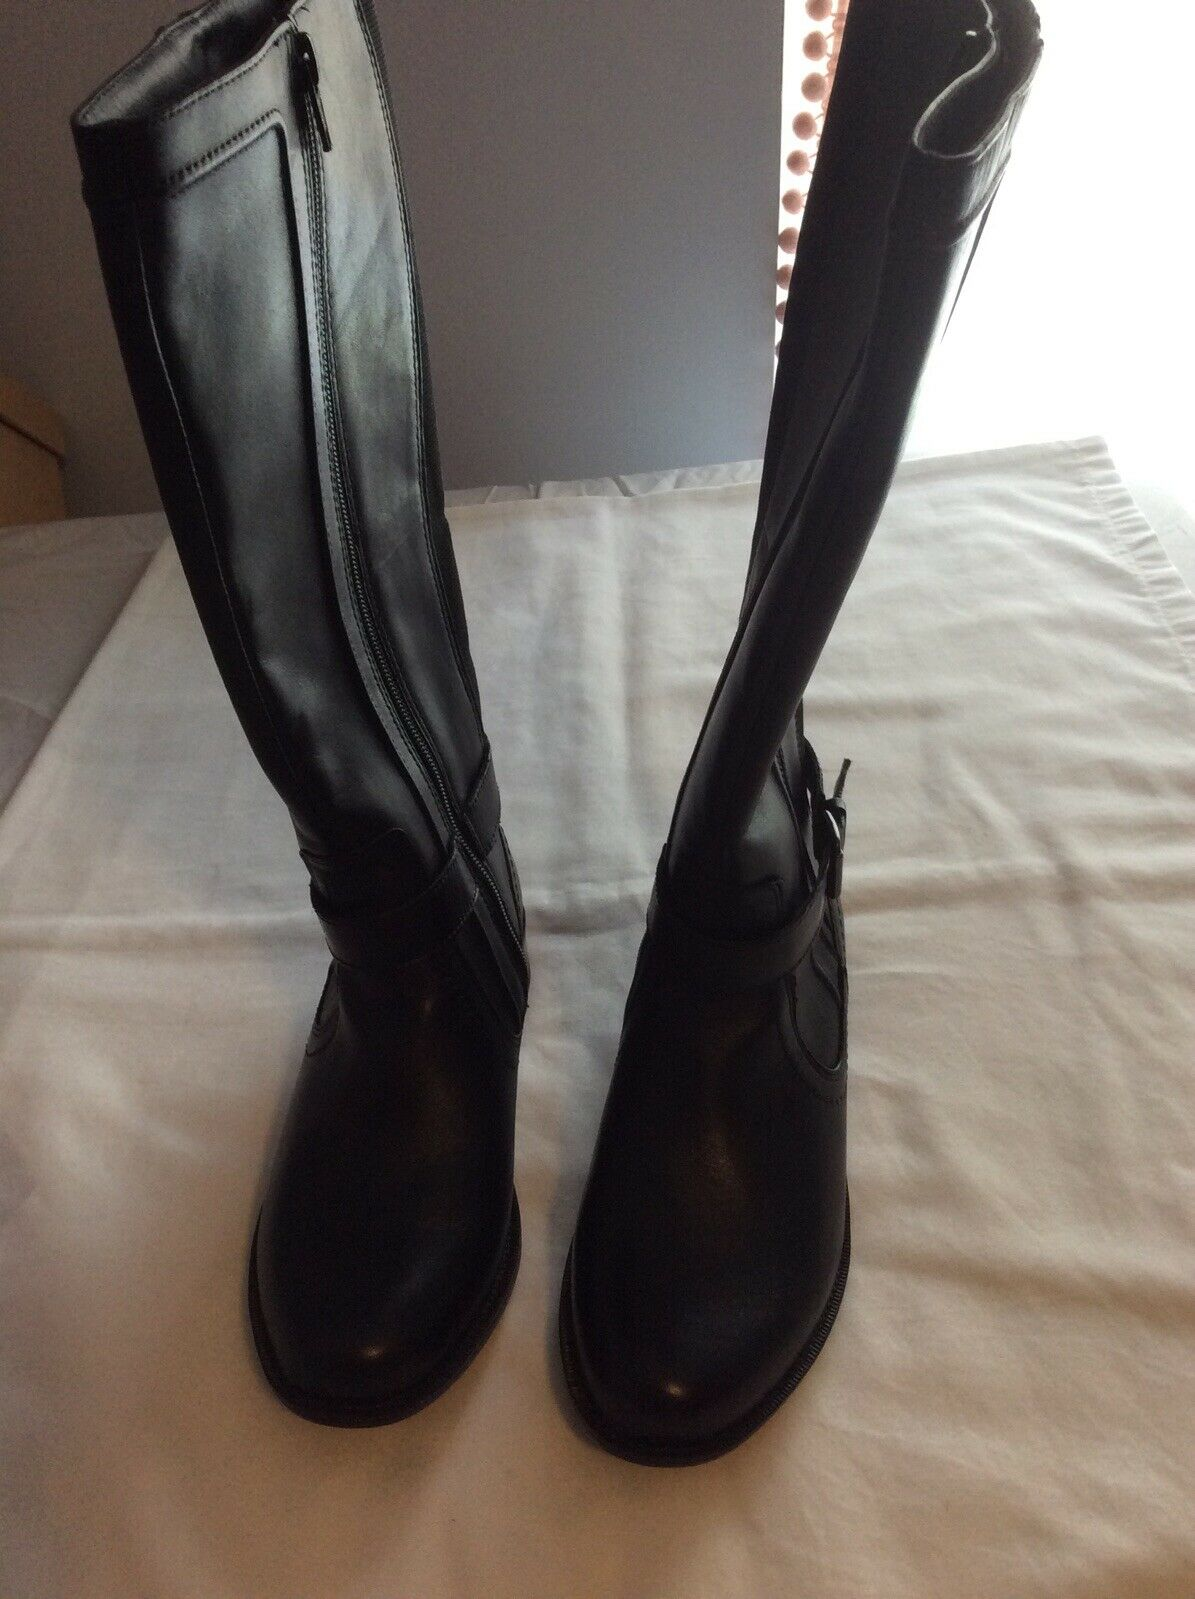 Rockport Christy CCP02BK Leather Boots Womens Size 5.5M Black Waterproof New